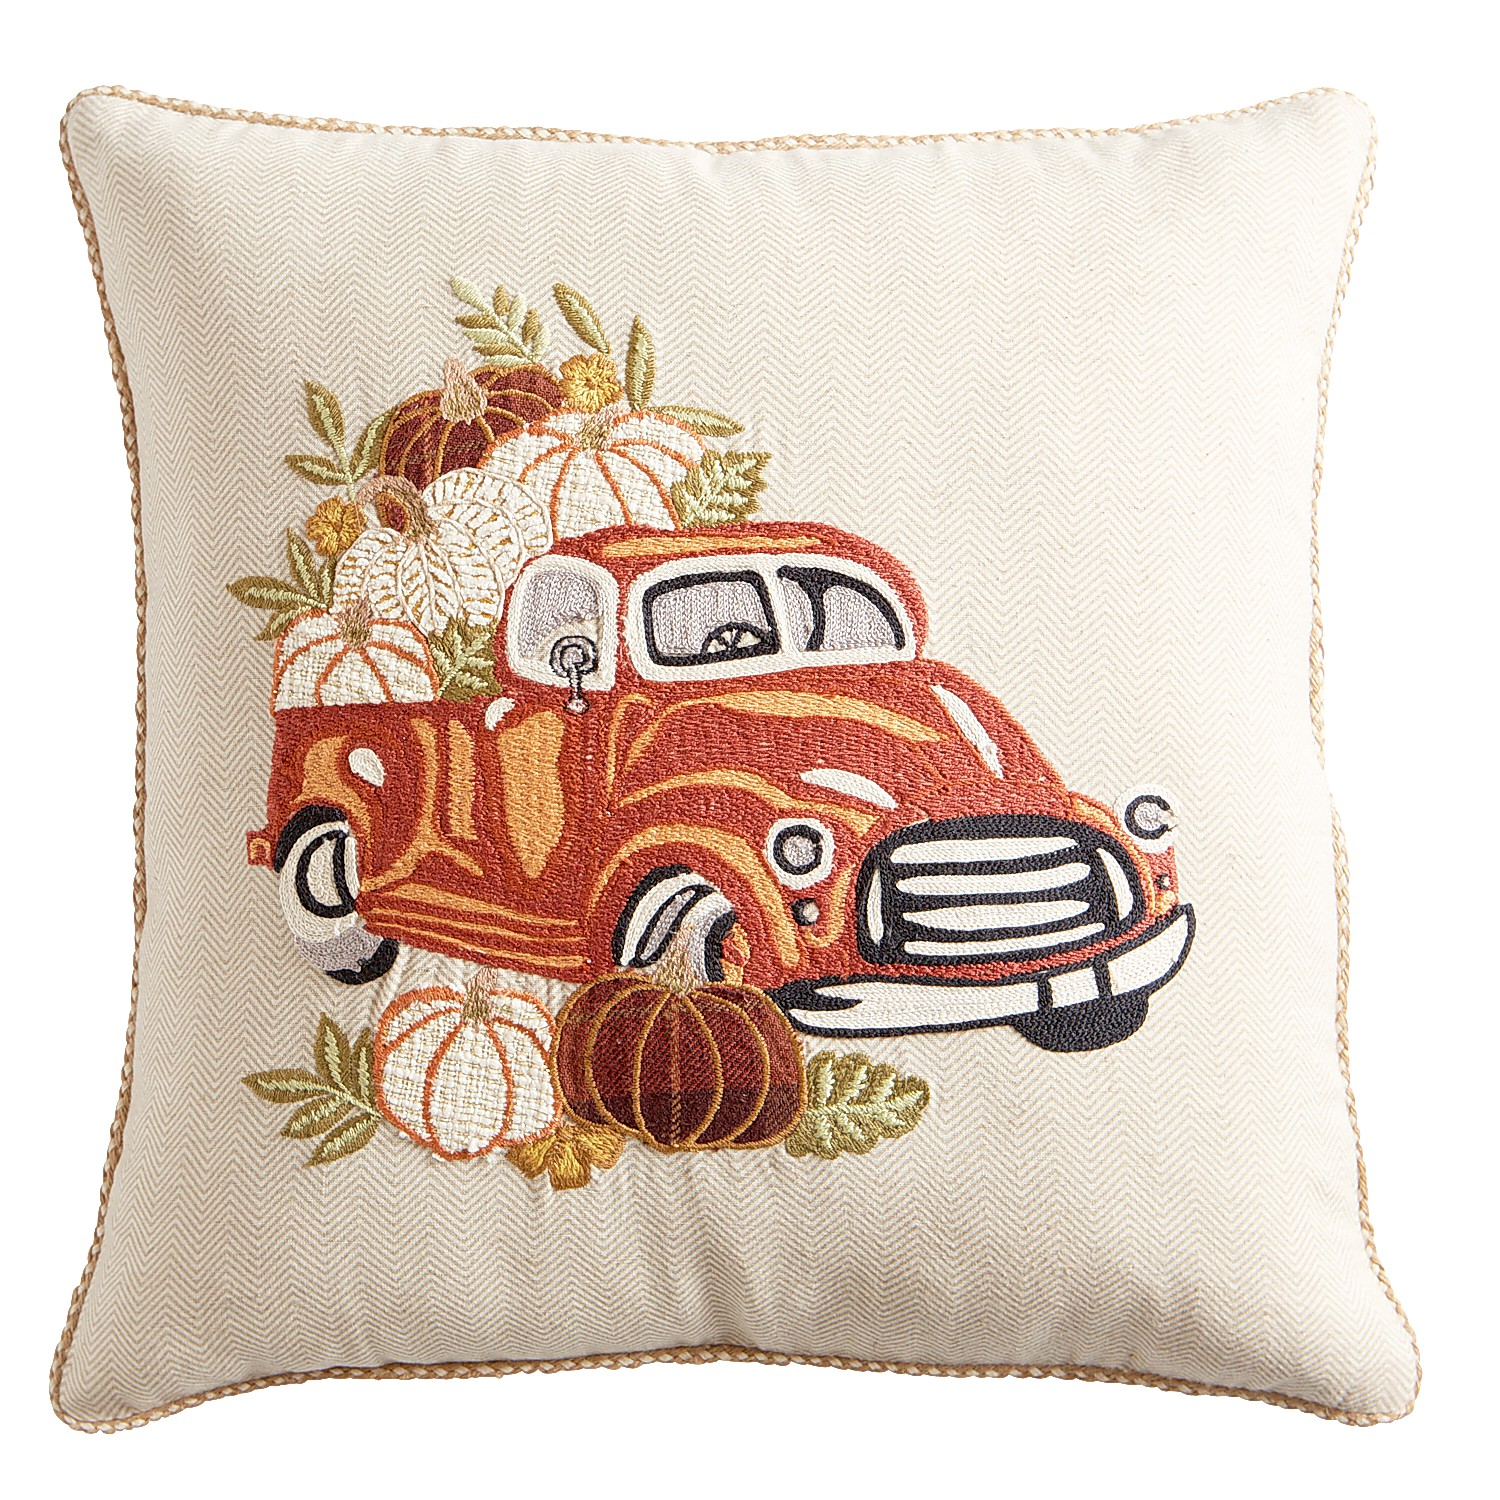 Embroidered Pumpkins in Truck Pillow